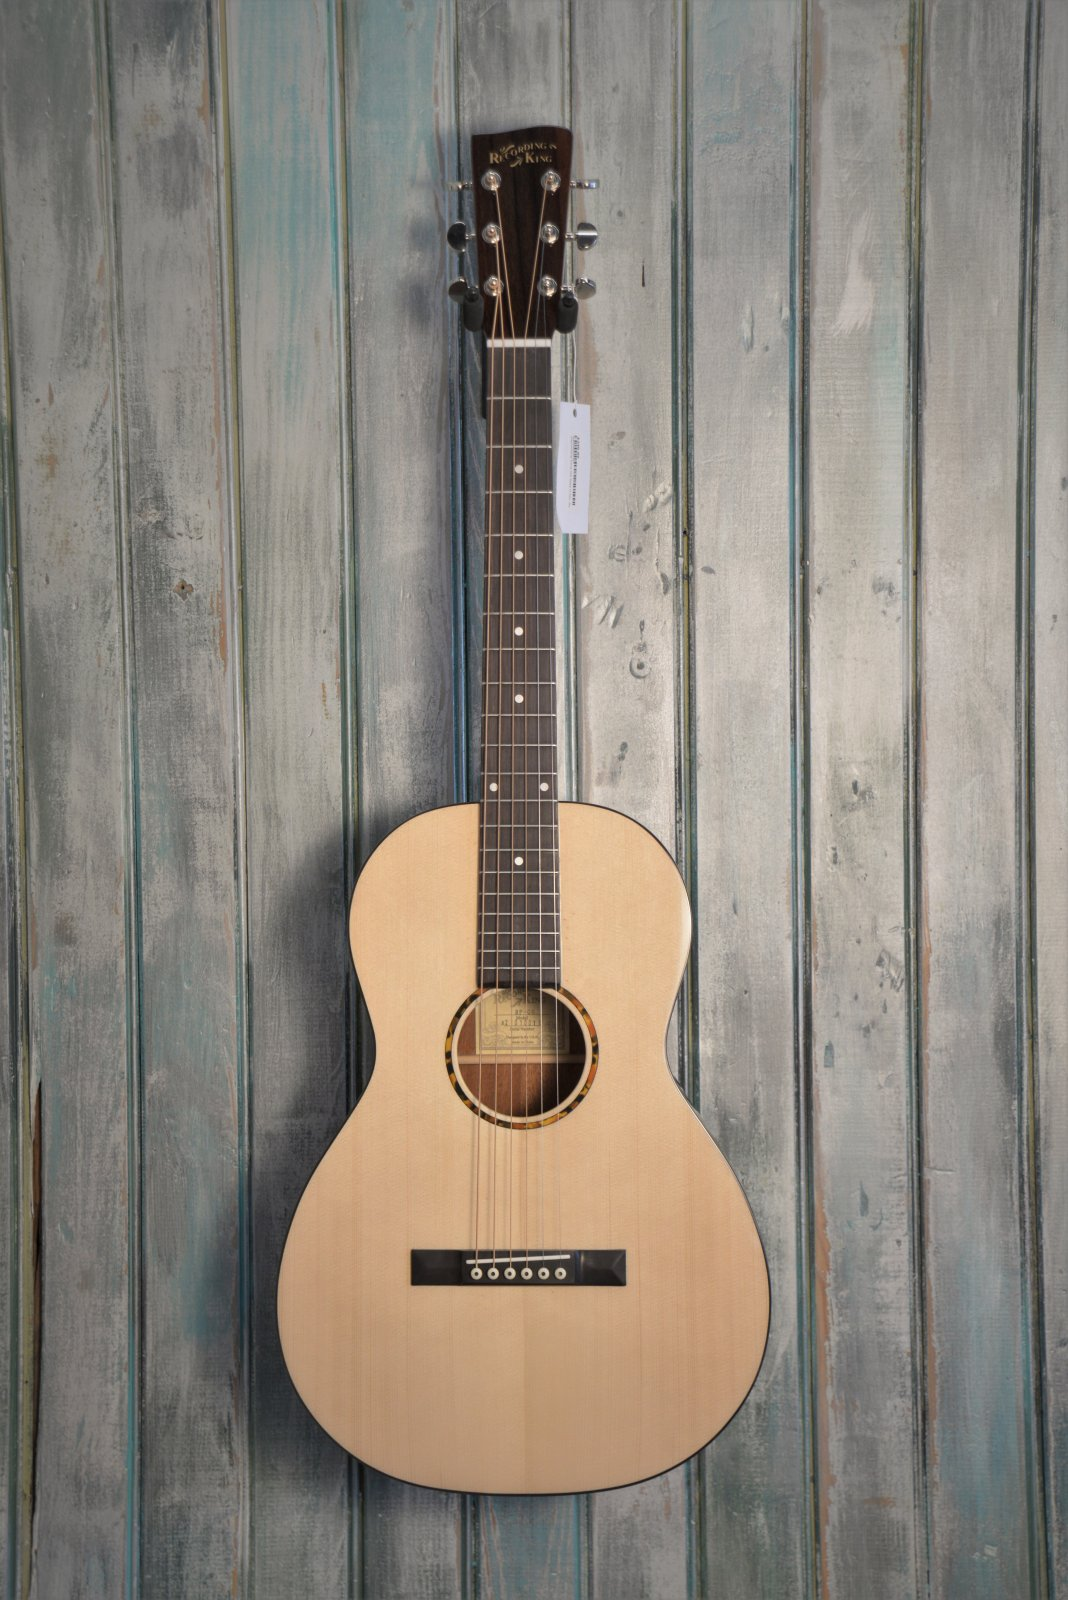 Recording King G6 000 Guitar, Solid Top